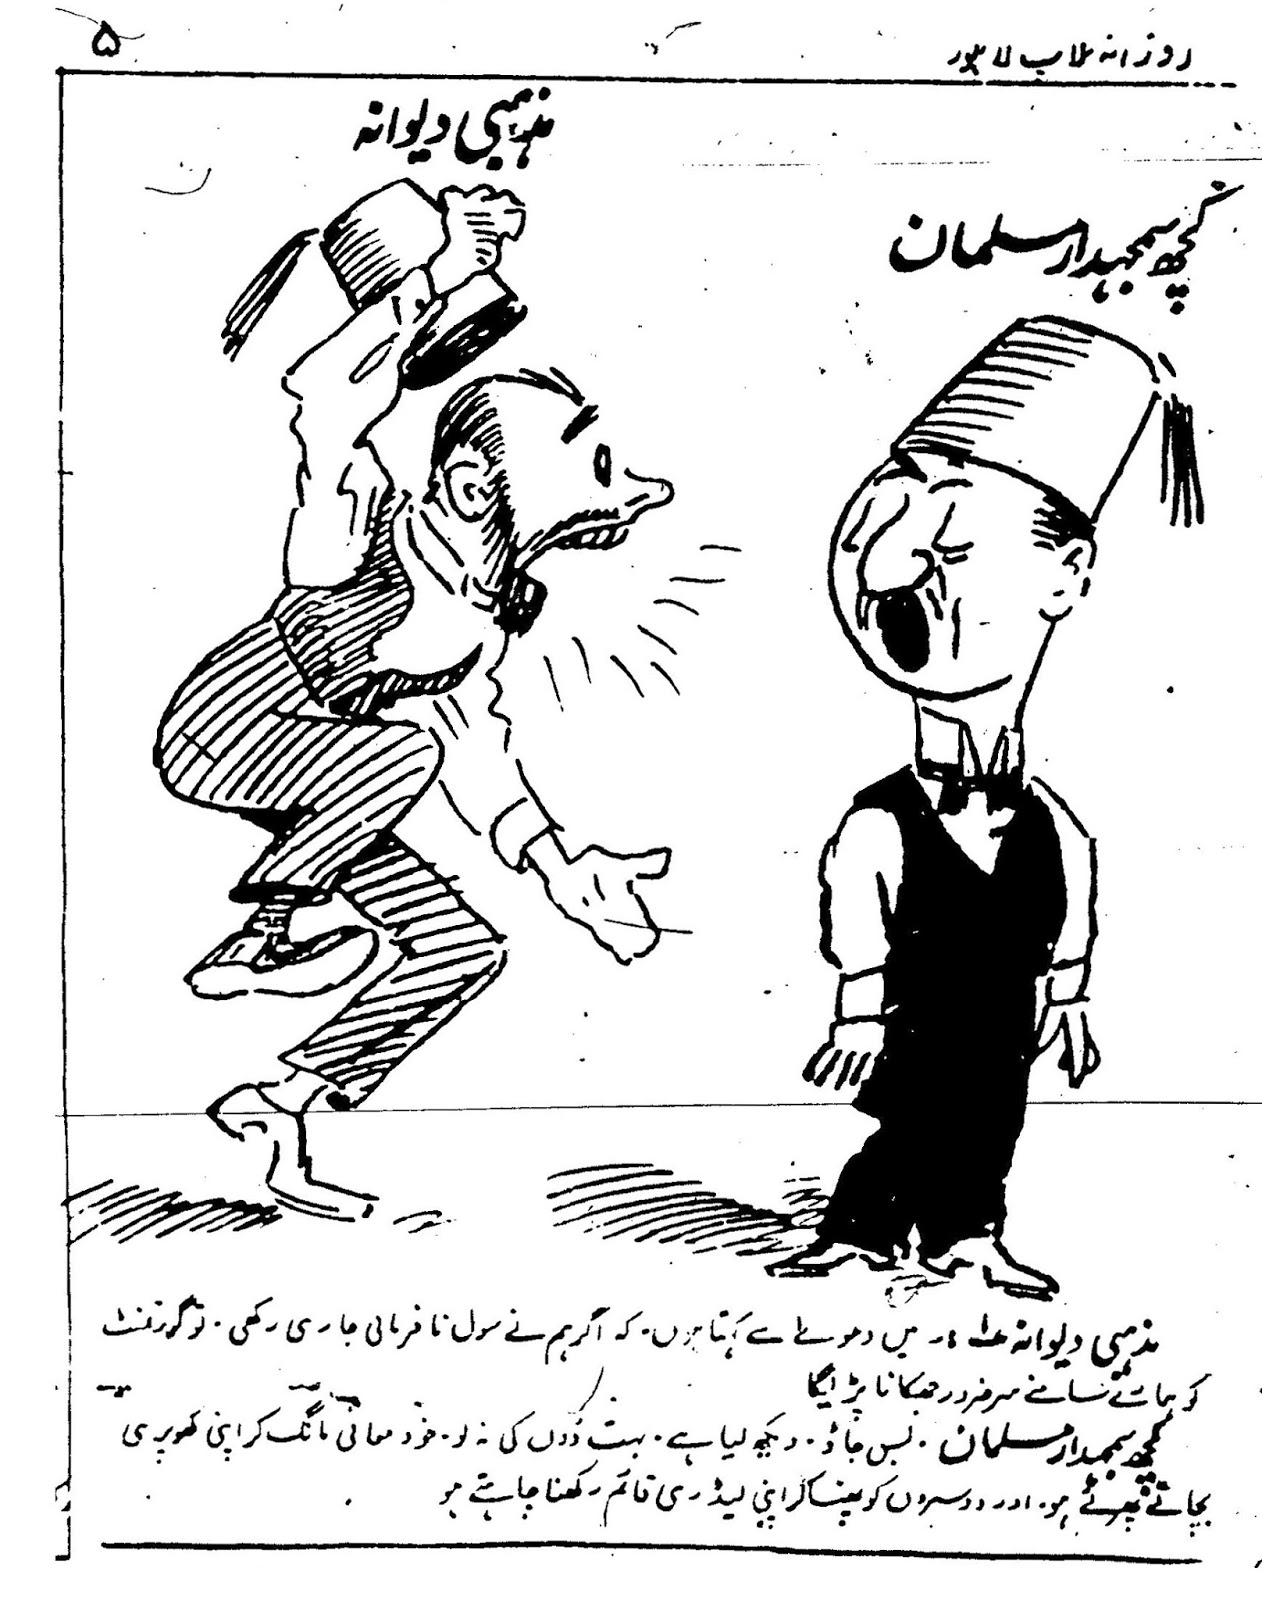 "Above a cartoon published in the Lahore newspaper Milap in 1927 drew a sharp visual contrast between the kuch samajhdar musalman (the somewhat-reasonable Muslim), outfitted in a waistcoat and bowtie, and the mazhabi diwana (religious crazy or fanatic), bearded and jumping up and down in a fit of passion. While the caricature in Milap might seem less offensive than calling all Indian Muslims fanatics, it worked as a veiled threat. The inclusion of Muslims in nationalist politics depended on their renouncing so-called ""communal"" demands for legal protection from the types of religious injury discussed in this episode."